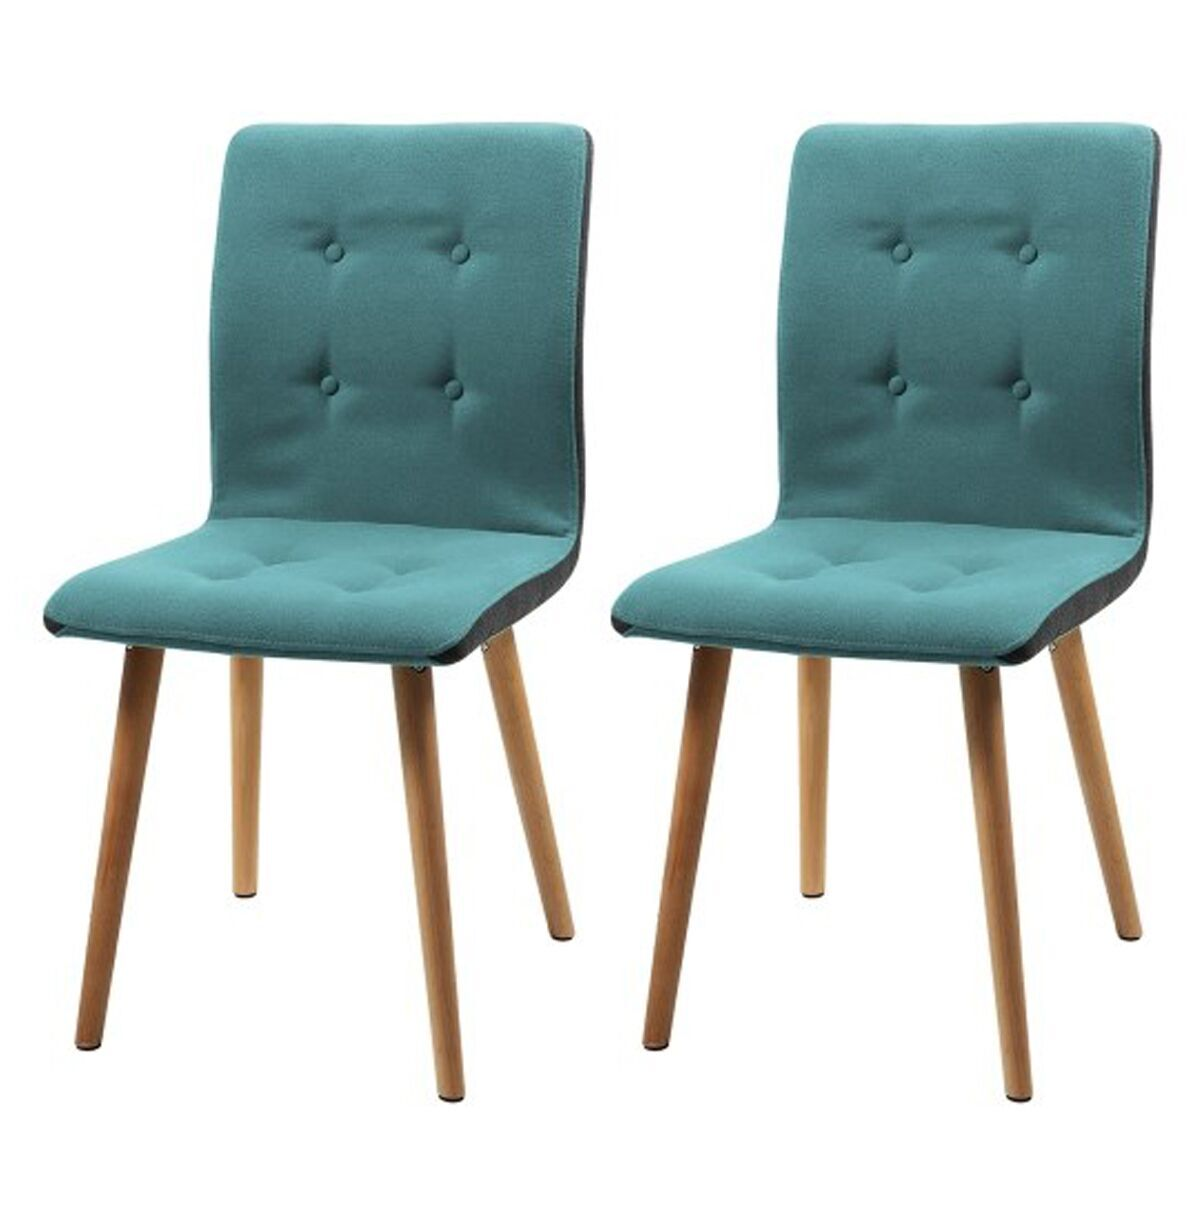 Teal Kitchen Chairs Frida Fabric Teal Dining Chairs Free Delivery Dining